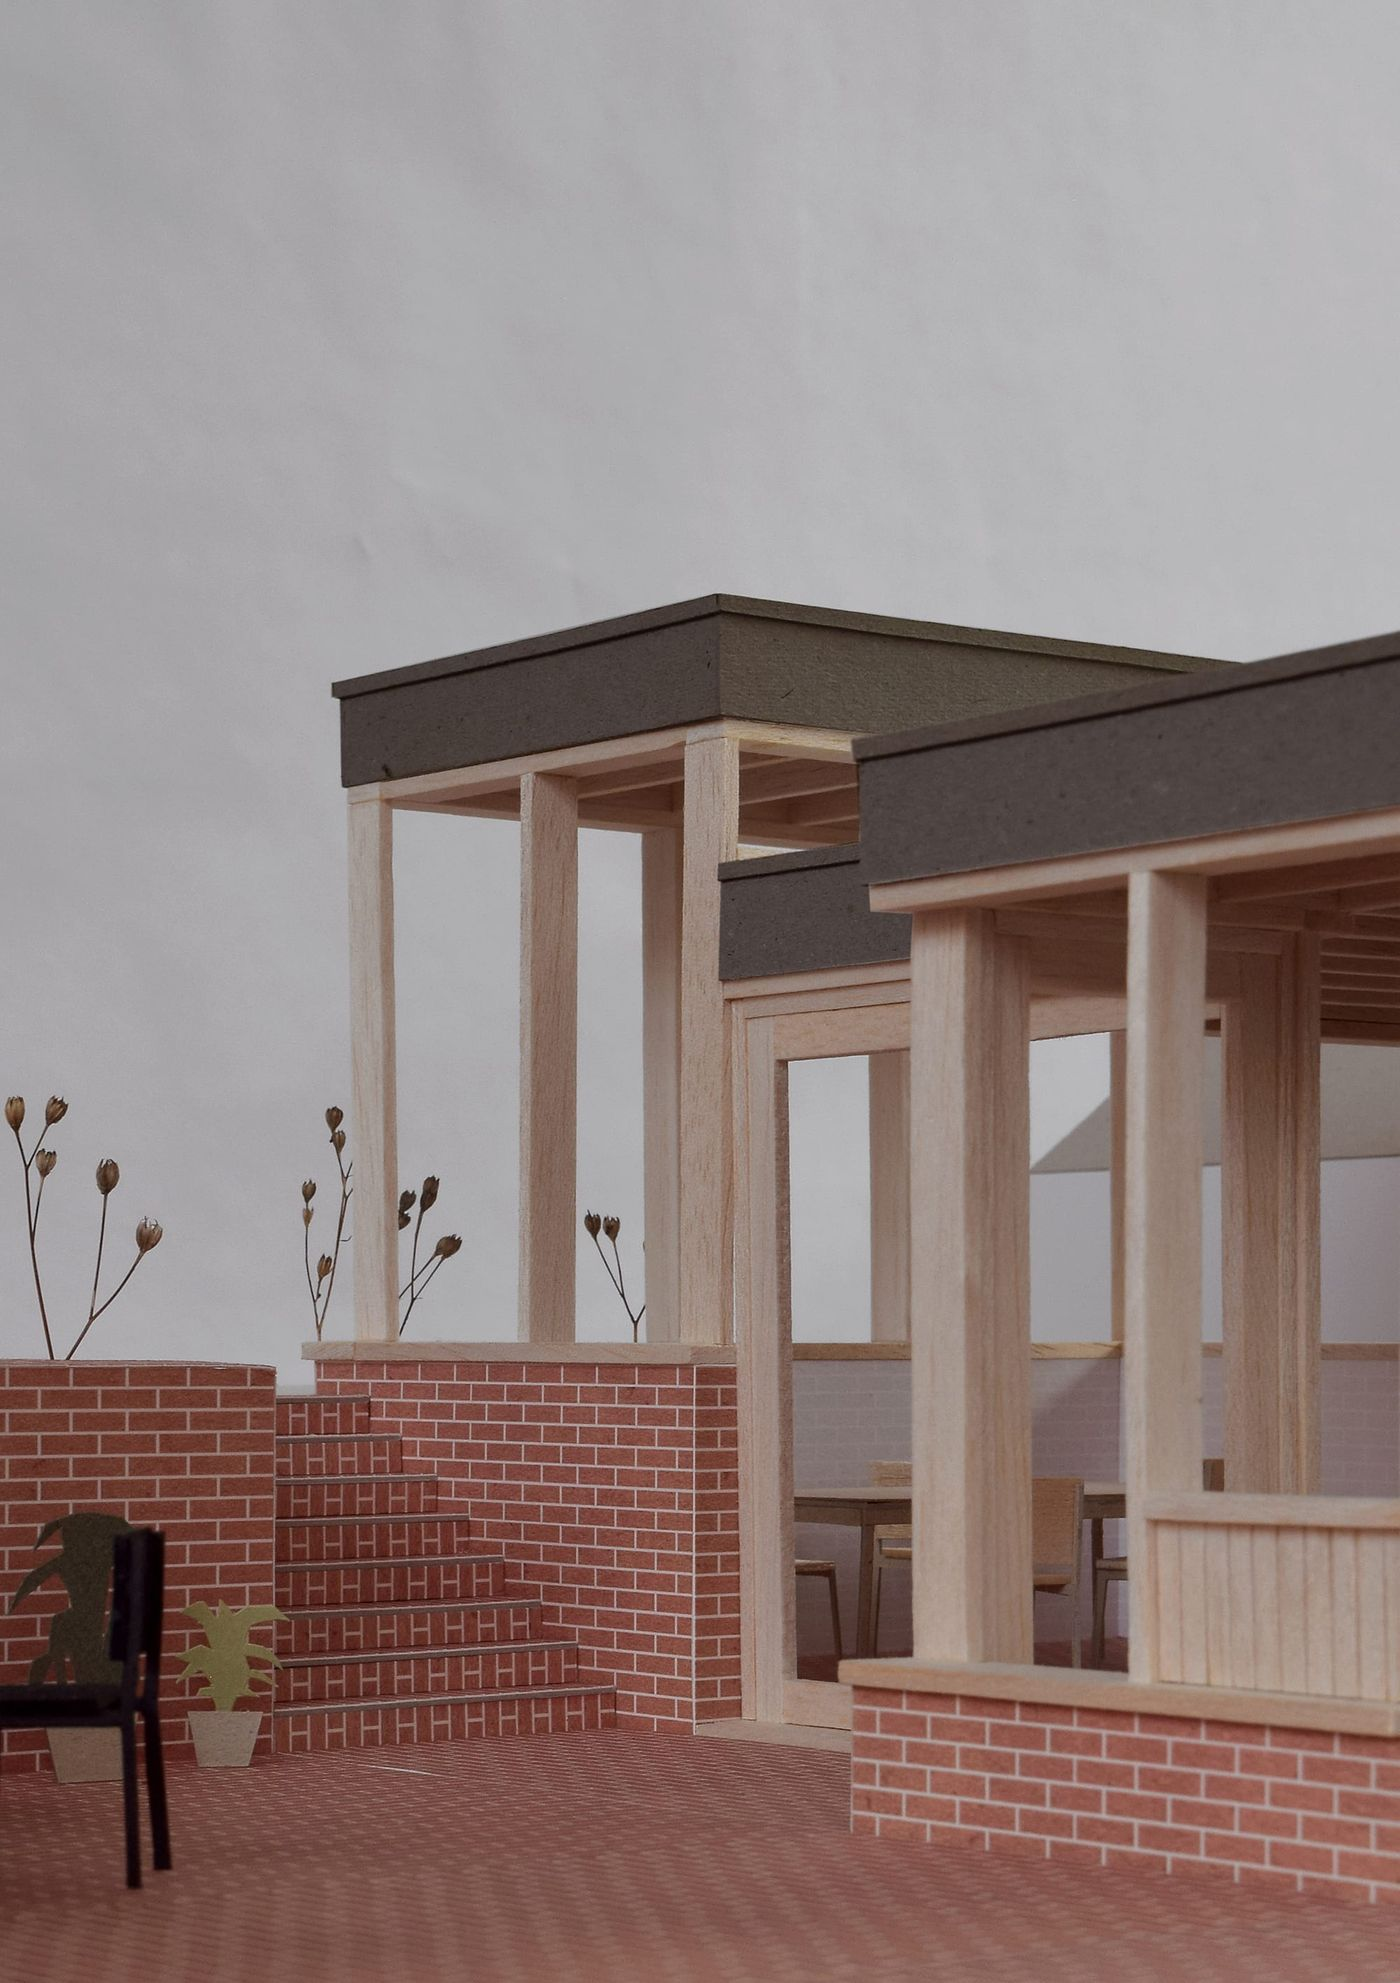 External model photograph for From Work's stepped brick and timber rear extension.